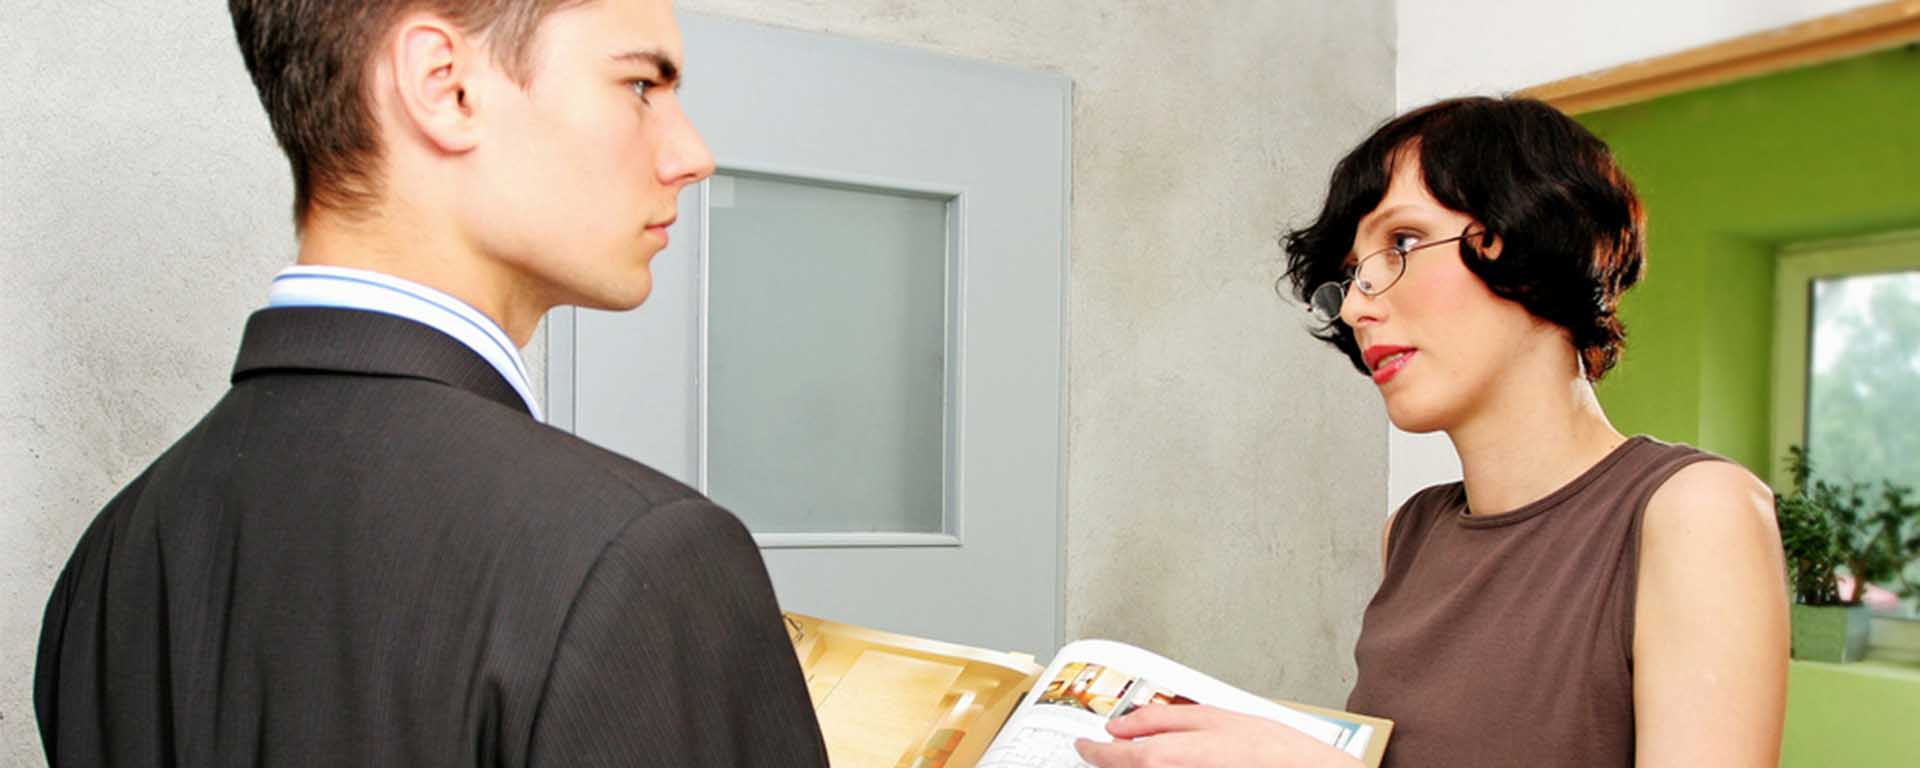 A white man frowns as a white woman is talking to him and pointing to a book